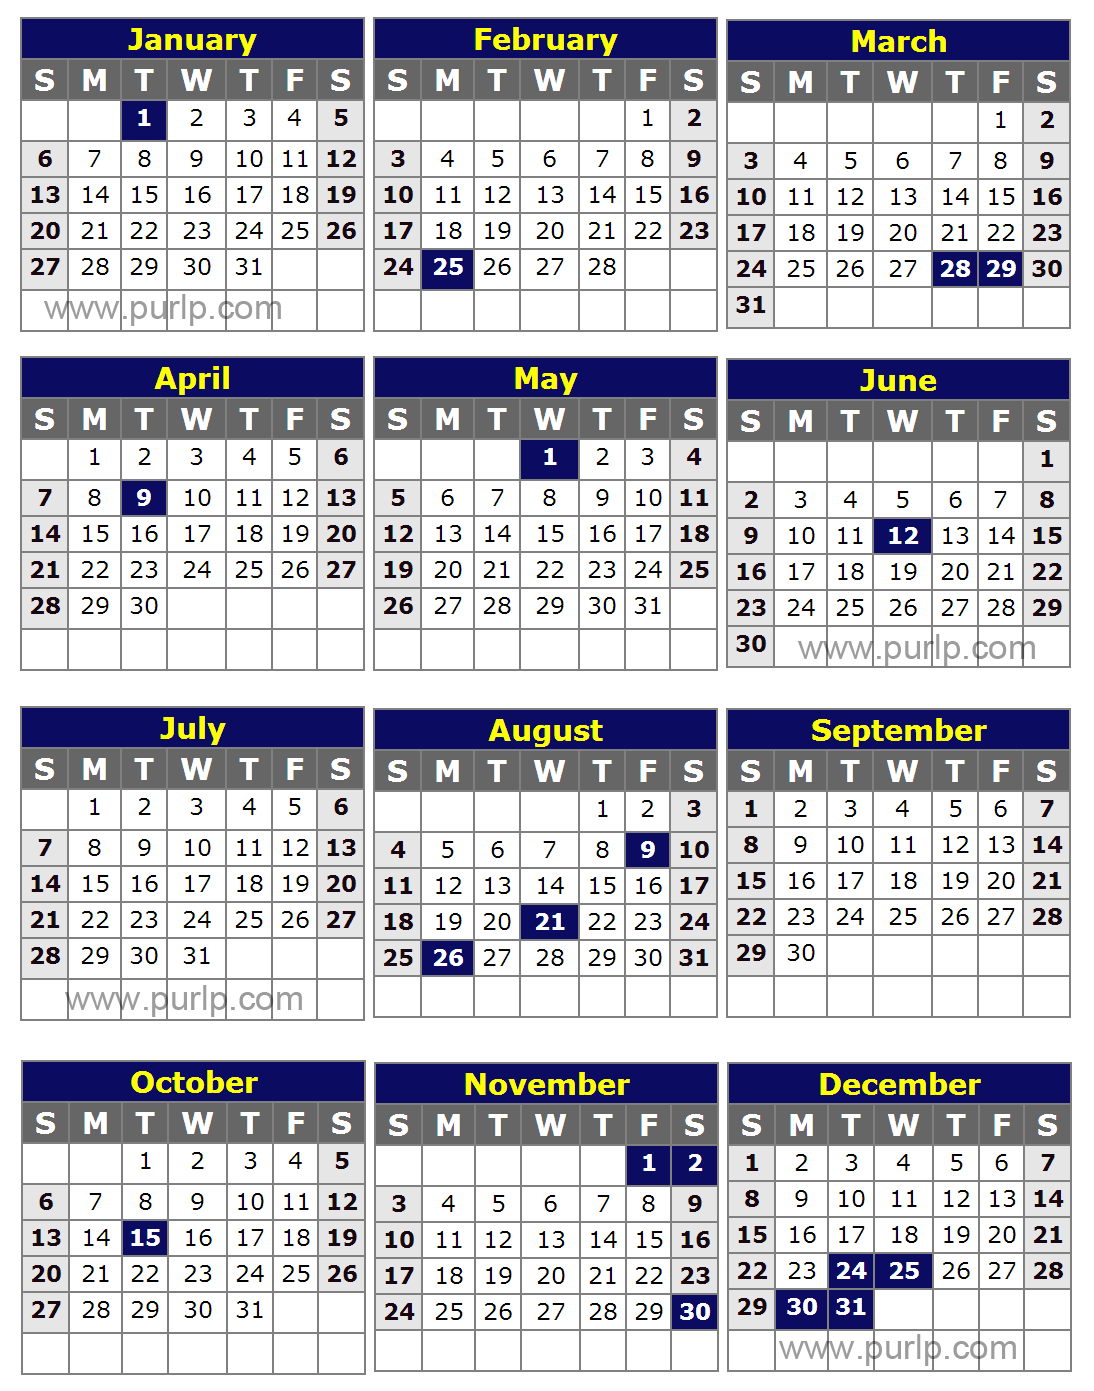 Calendar Holidays Philippines 2013 Calendar For Year 2018 United States Time And Date 2013 Calendar Philippines With Holidays – Photo Purlp